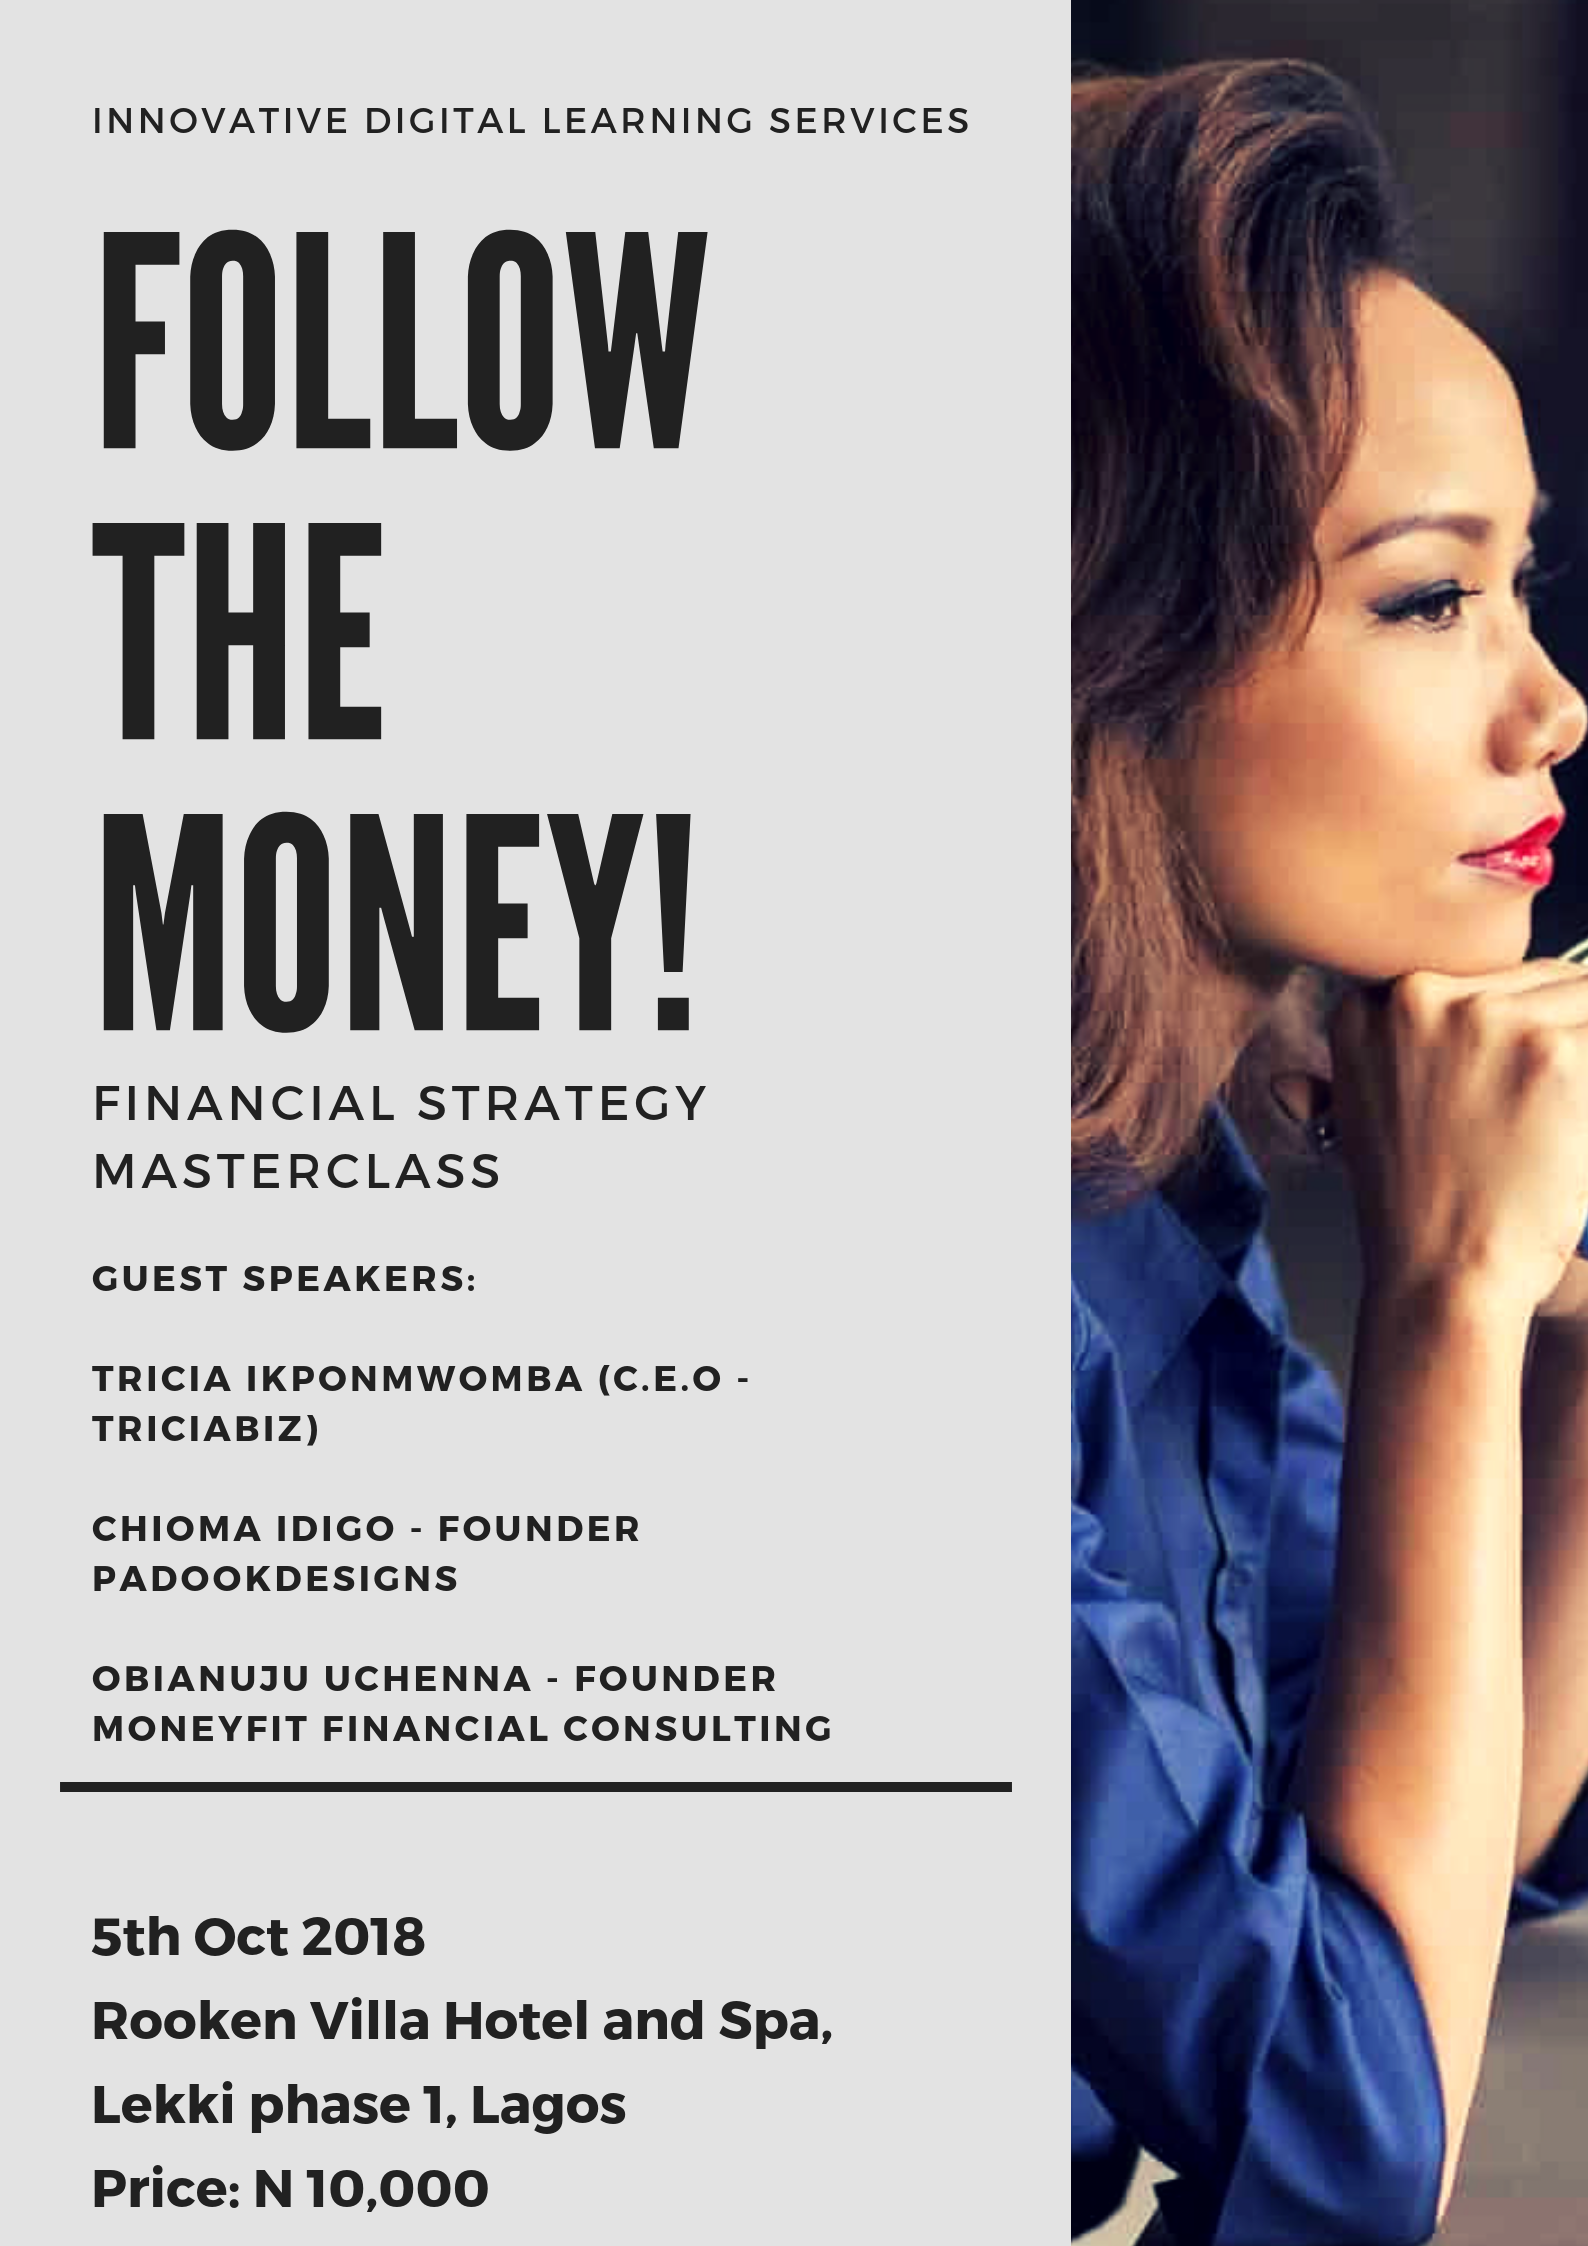 FTM (Follow the Money) Financial Strategy Masterclass Post free event in Nigeria using tickethub.ng, buy and sell tickets to event